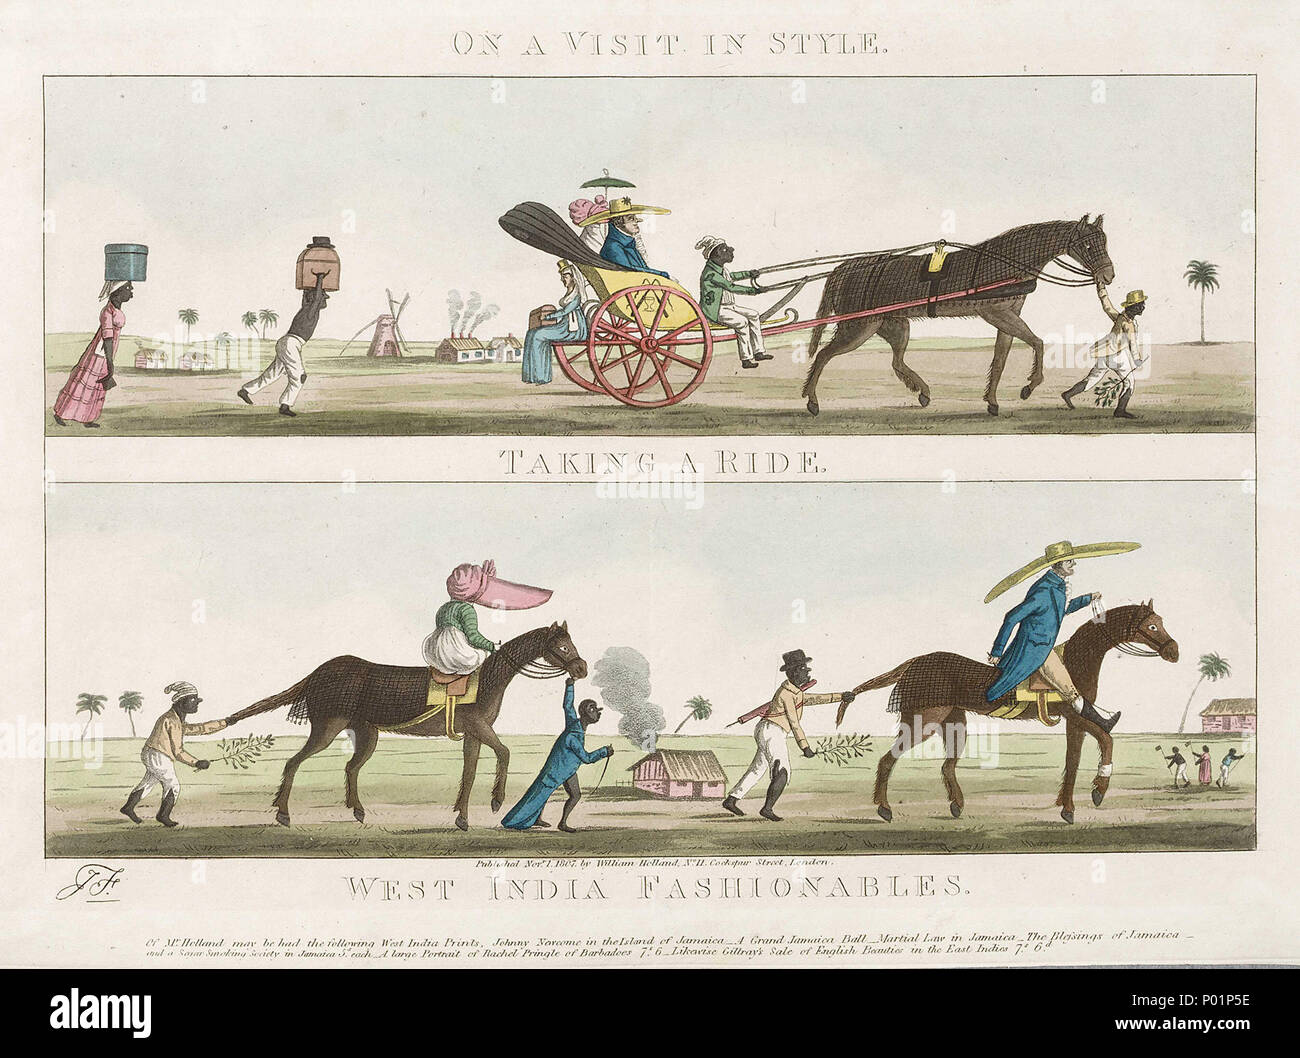 .  English: 'On a Visit in Style - Taking a Ride - West India Fashionables' Two vignettes inscribed 'Taking a Ride' and 'West India Fashionables', probably by James Sayers (1748-1823). This image satirizes a planter in the British Caribbean colonies. It illustrates his life of ease, and contrasts this with the heavy burdens being carried and menial tasks being done by enslaved people on the plantation. 'On a Visit in Style - Taking a Ride - West India Fashionables'  . 1 November 1807. J. S; William Holland 5 'On a Visit in Style - Taking a Ride - West India Fashionables' RMG E9119 - Stock Image